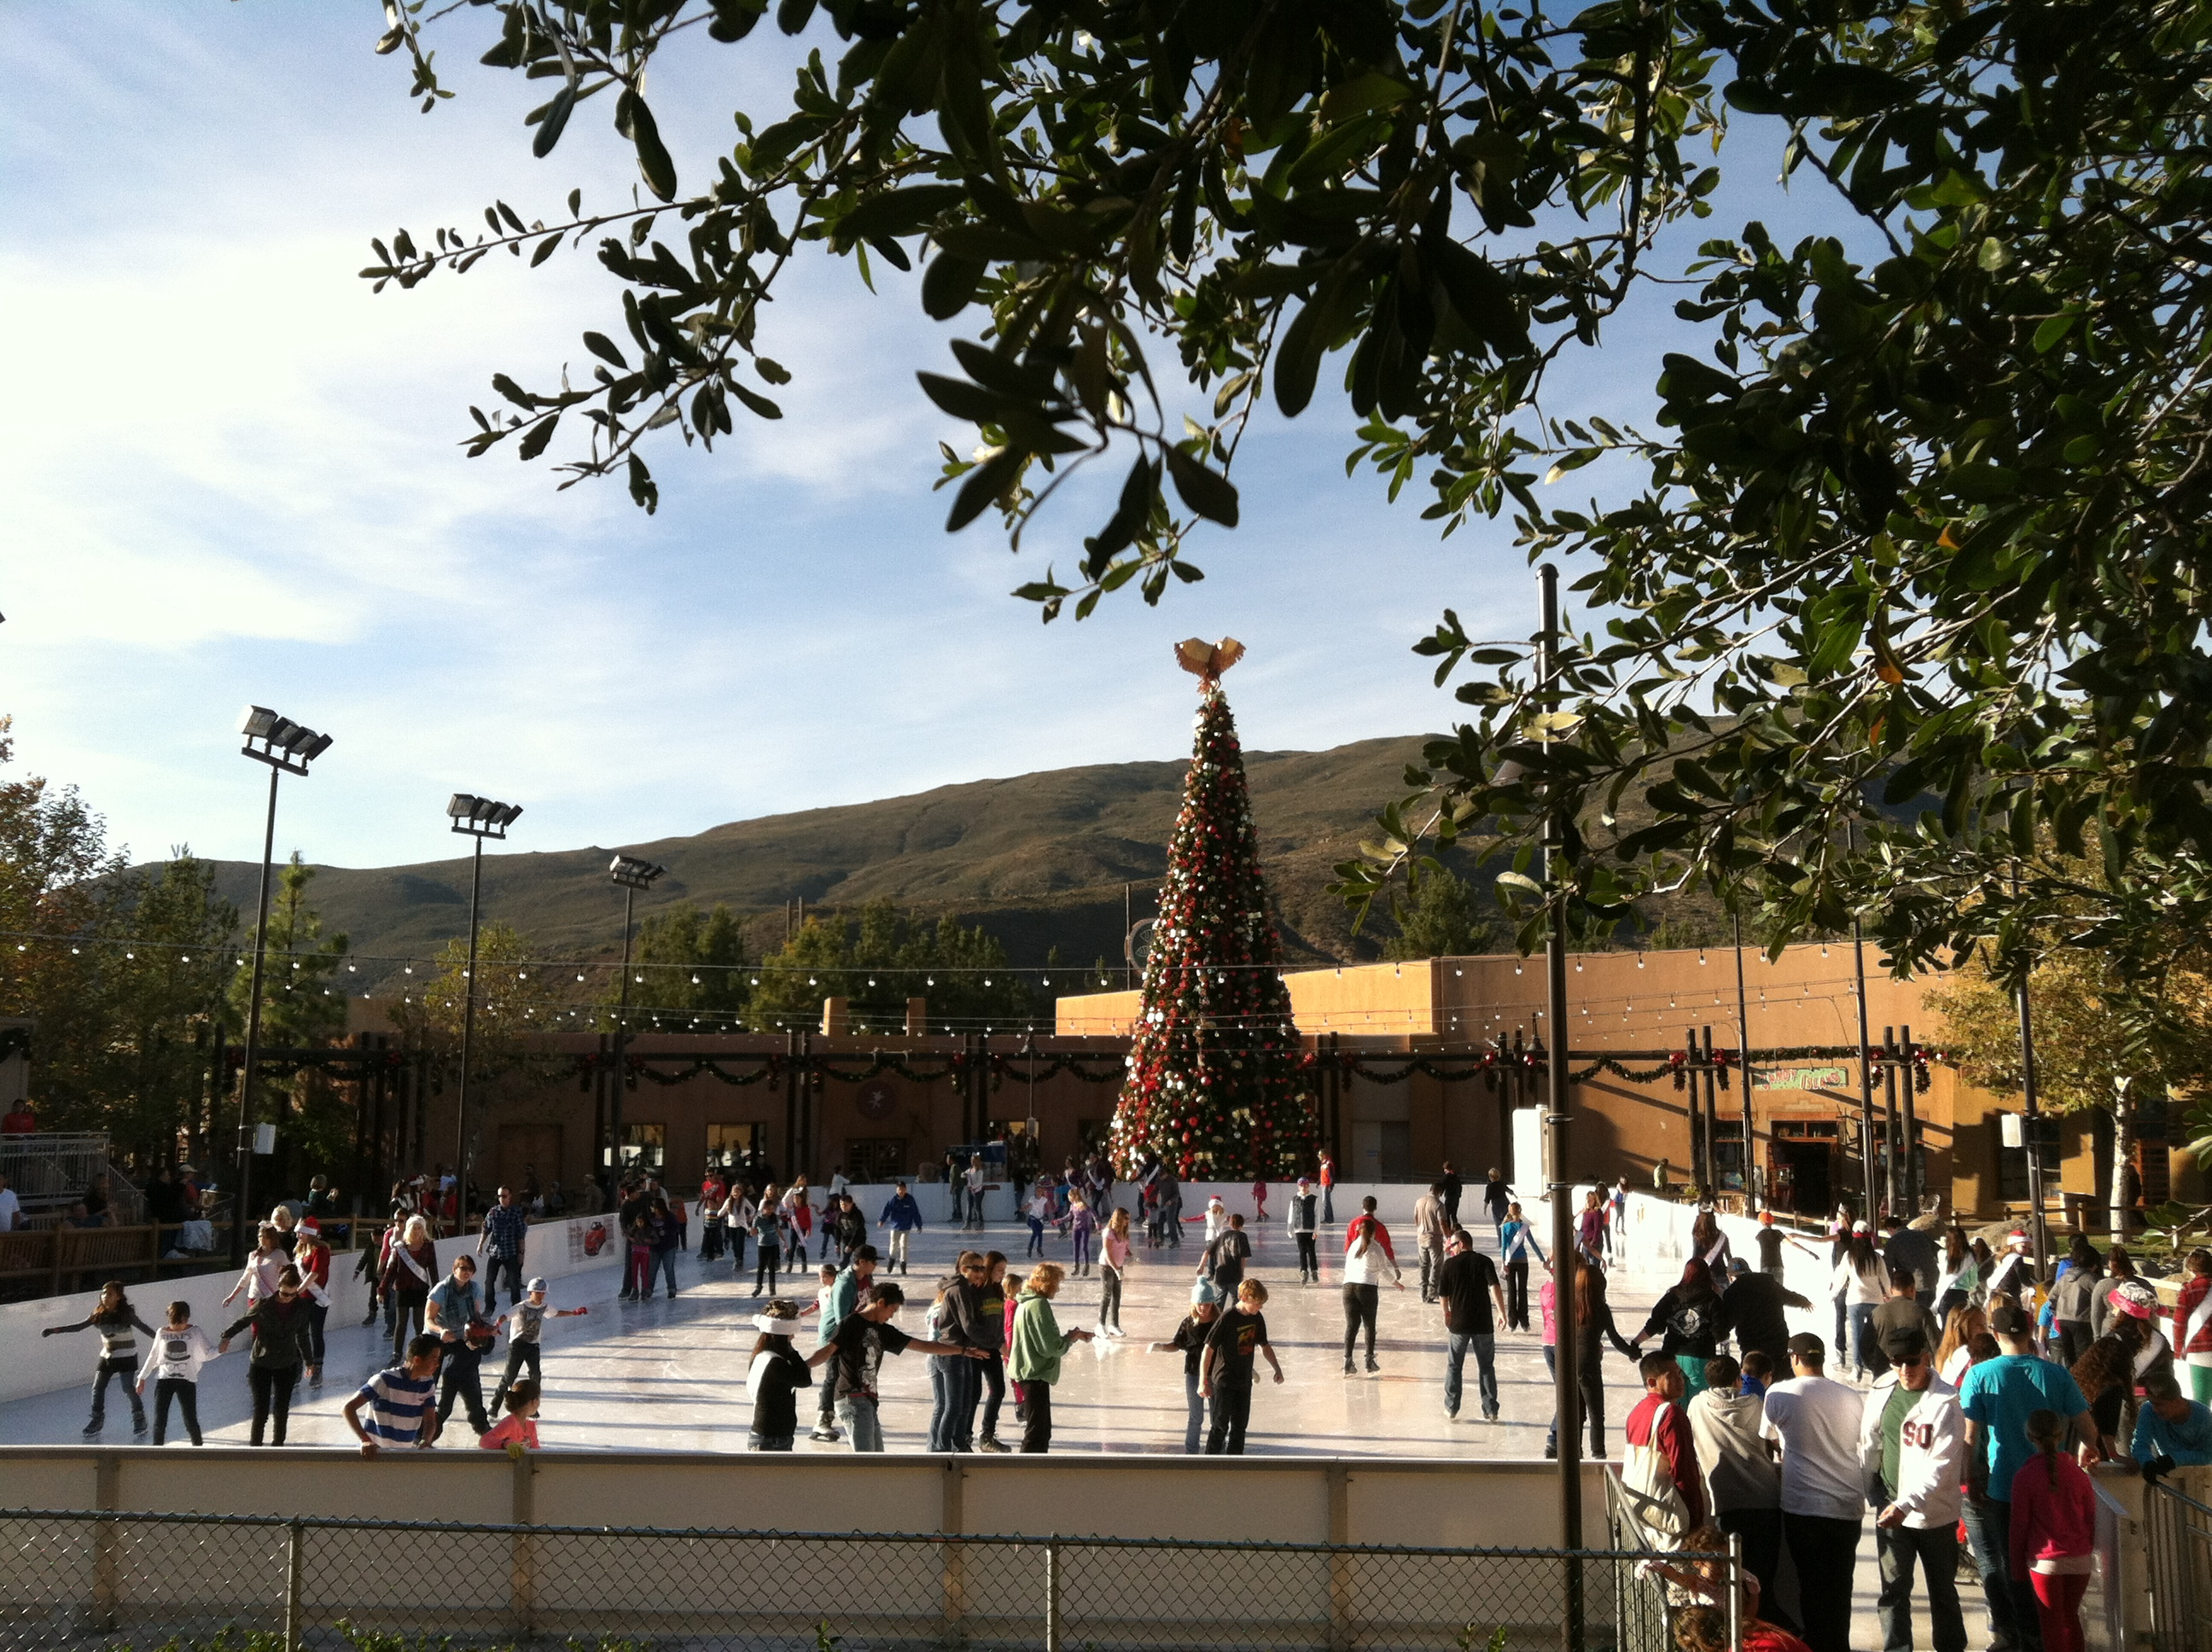 Viejas Outlet Center Ice Skating